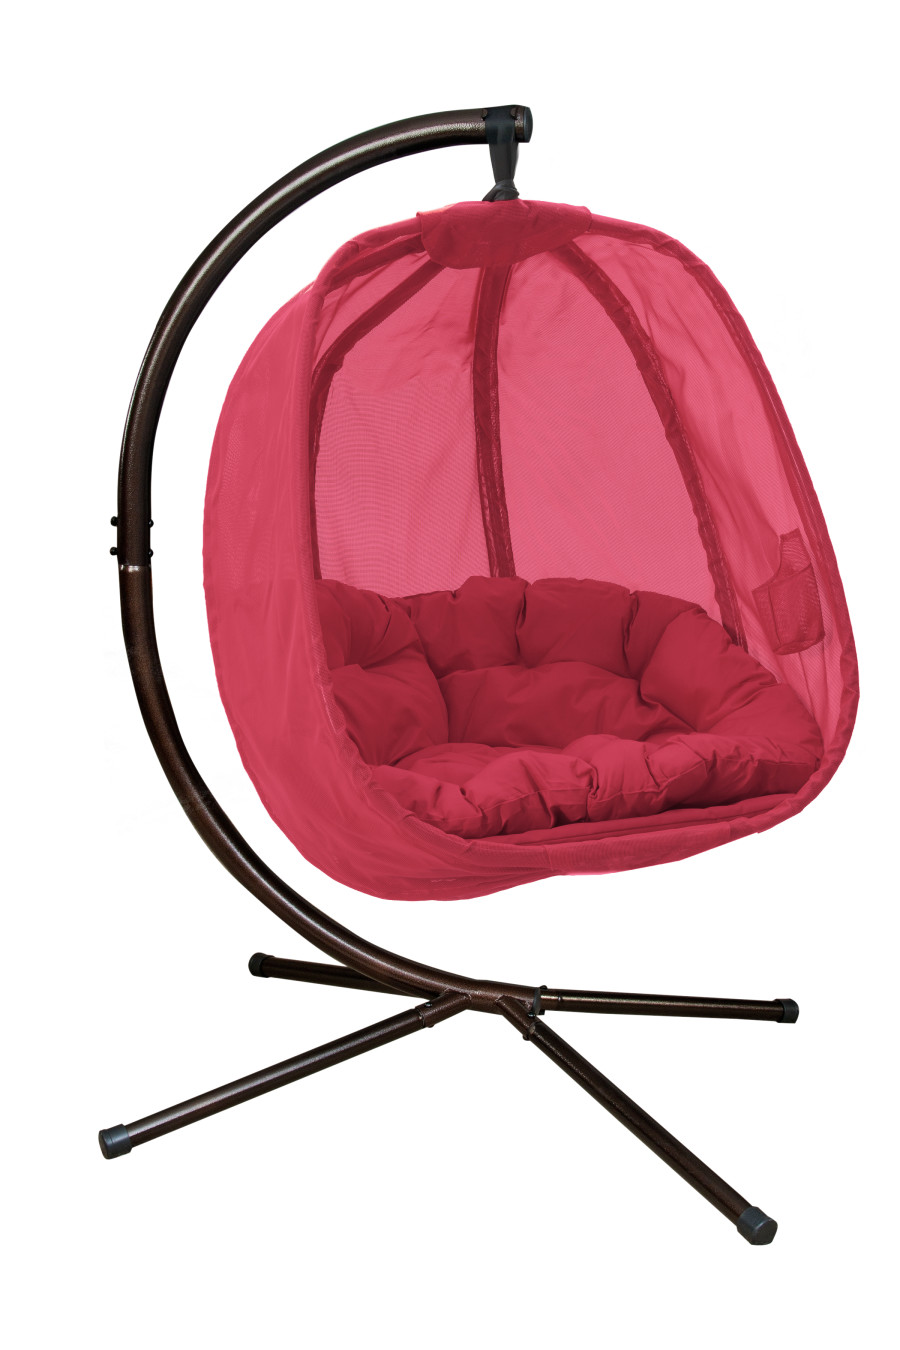 FlowerHouse Hanging Egg Chair with Stand